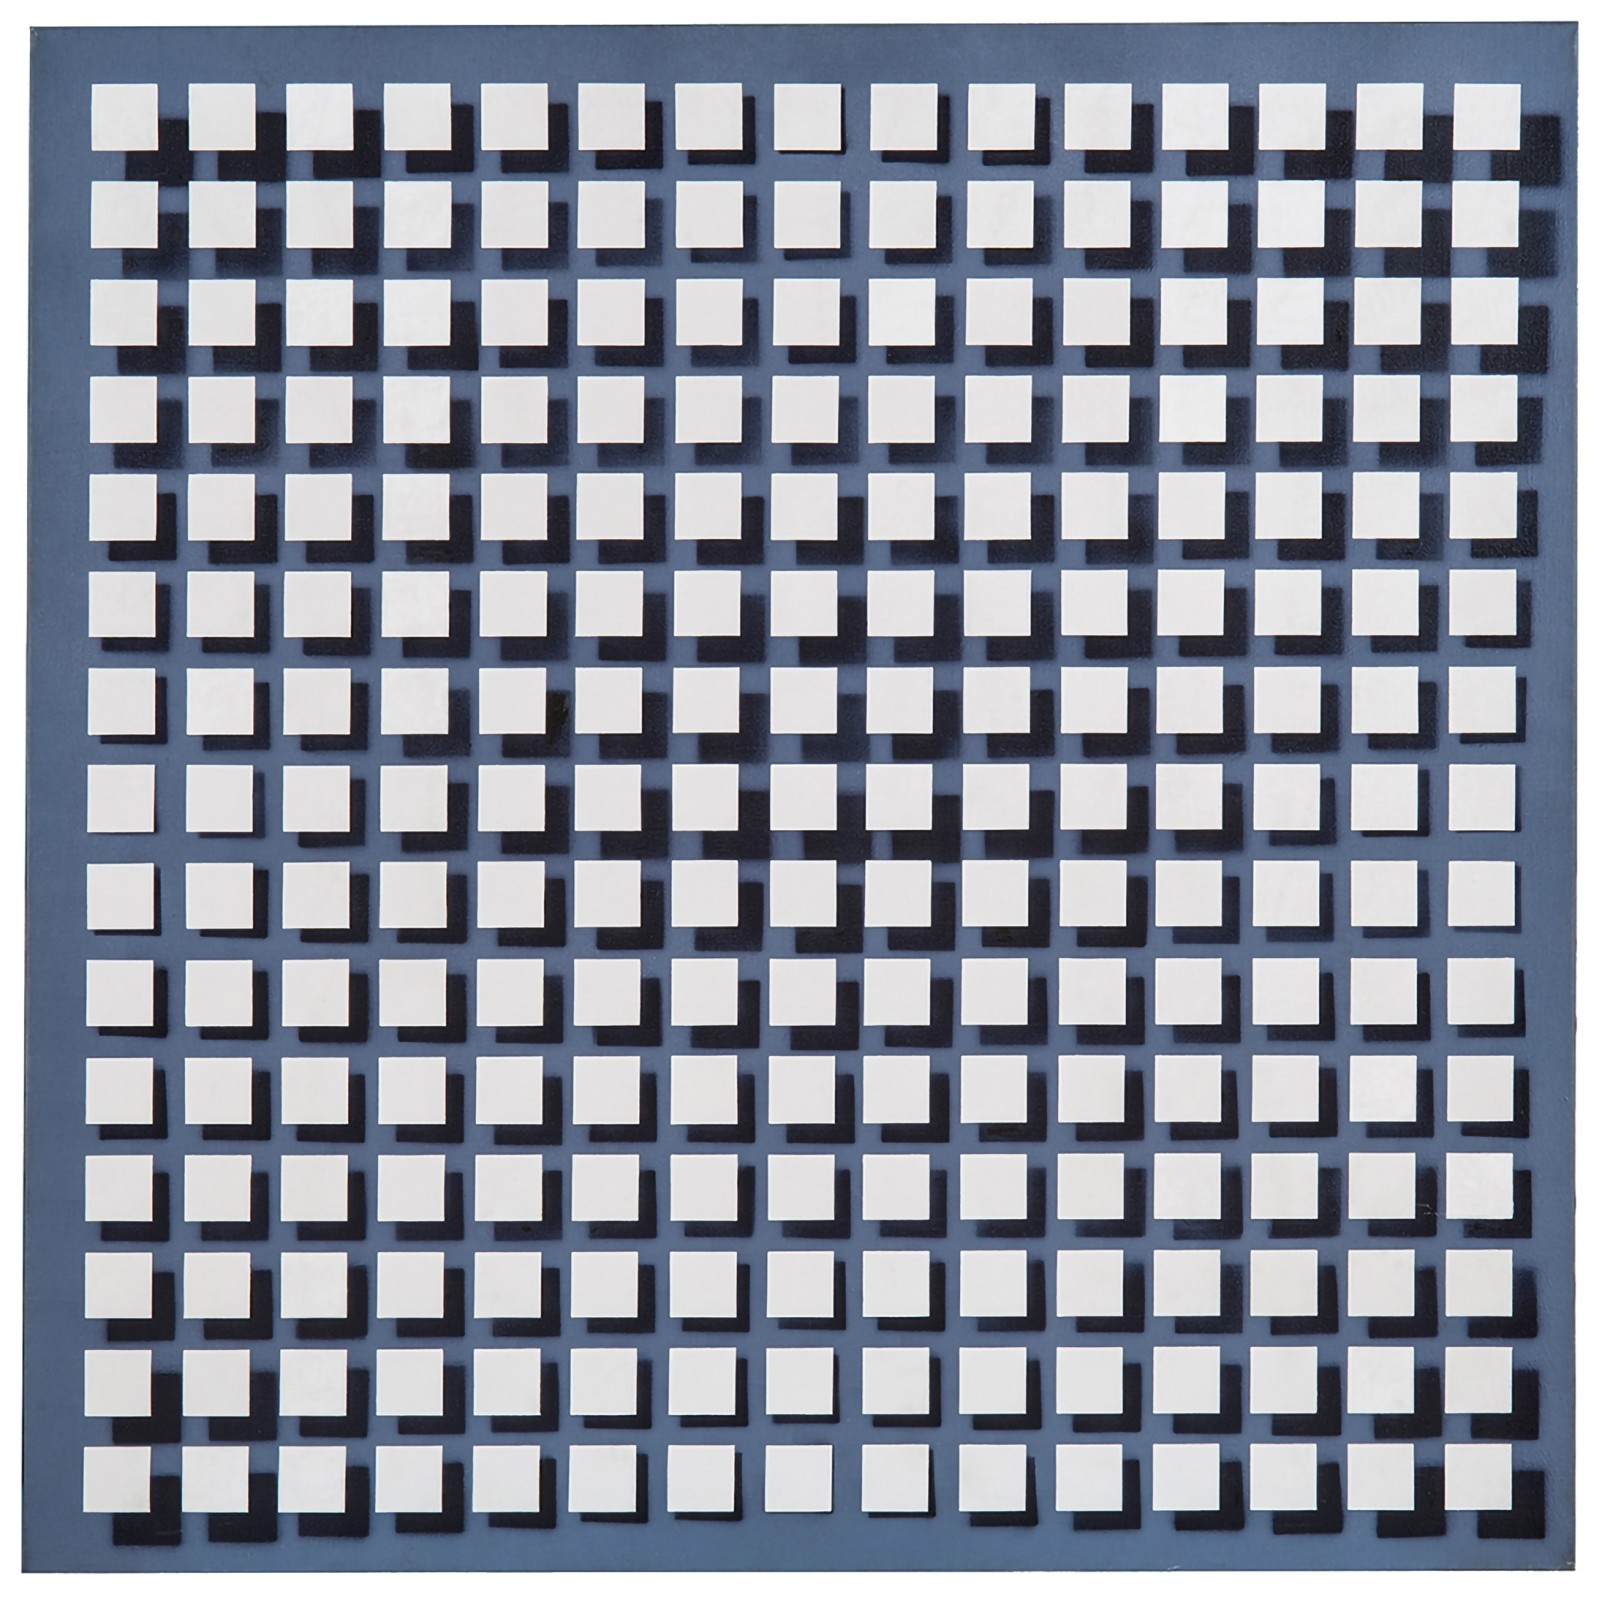 """<span class=""""link fancybox-details-link""""><a href=""""/artists/92-julio-le-parc/works/10887/"""">View Detail Page</a></span><div class=""""artist""""><span class=""""artist""""><strong>JULIO LE PARC</strong></span></div><div class=""""title""""><em>Modulacion 114B</em>, 1976</div><div class=""""signed_and_dated"""">Signed and dated on the reverse</div><div class=""""medium"""">Acrylic on canvas</div><div class=""""dimensions"""">120 x 120 cm <br /> 47 ¼ x 47 ¼ inches</div>"""